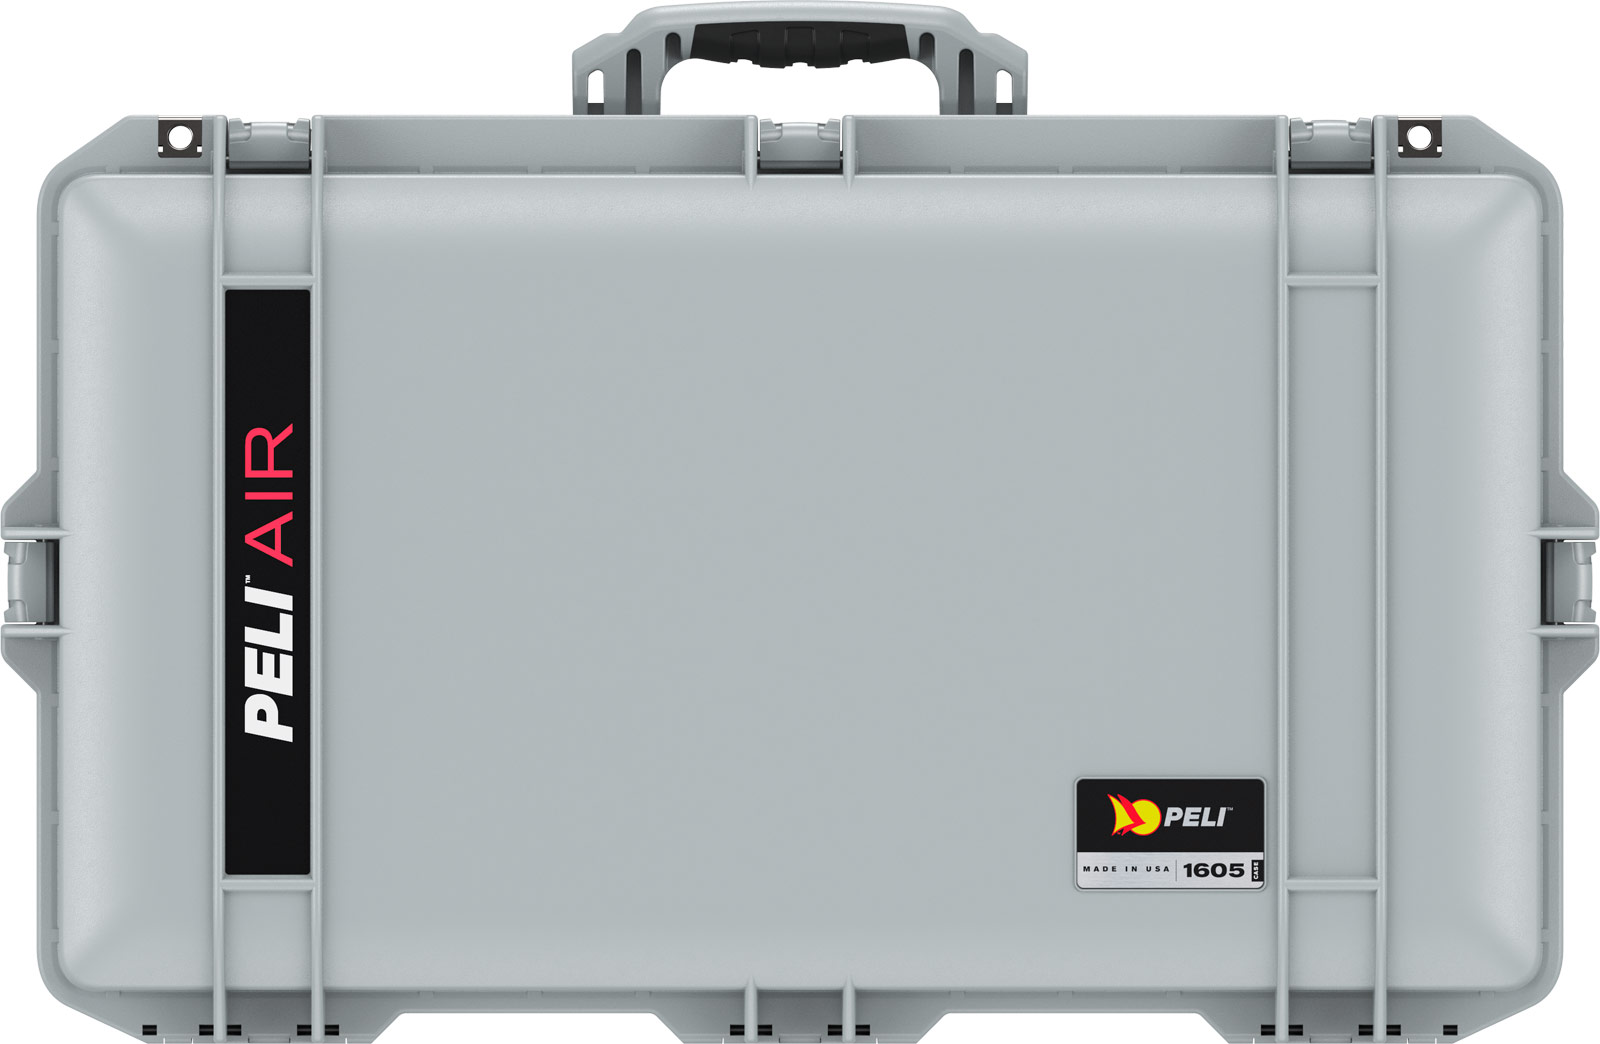 pelican 1605 air case grey lightweight cases 1605